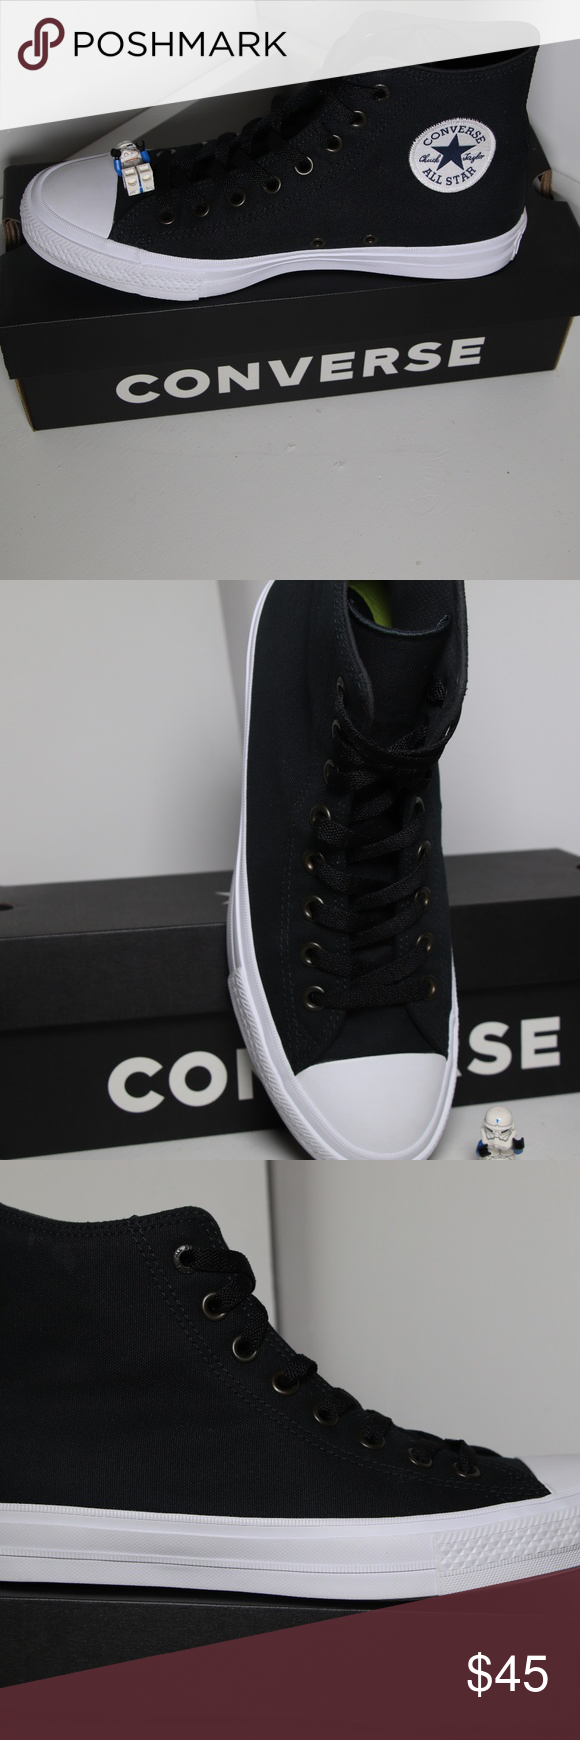 e55971ccd1ee Converse Chuck 2 Black All Star High Tops BRAND NEW in ORIGINAL BOX  100%  AUTHENTIC. Price is firm. I have many other Converse shoes available in  many other ...